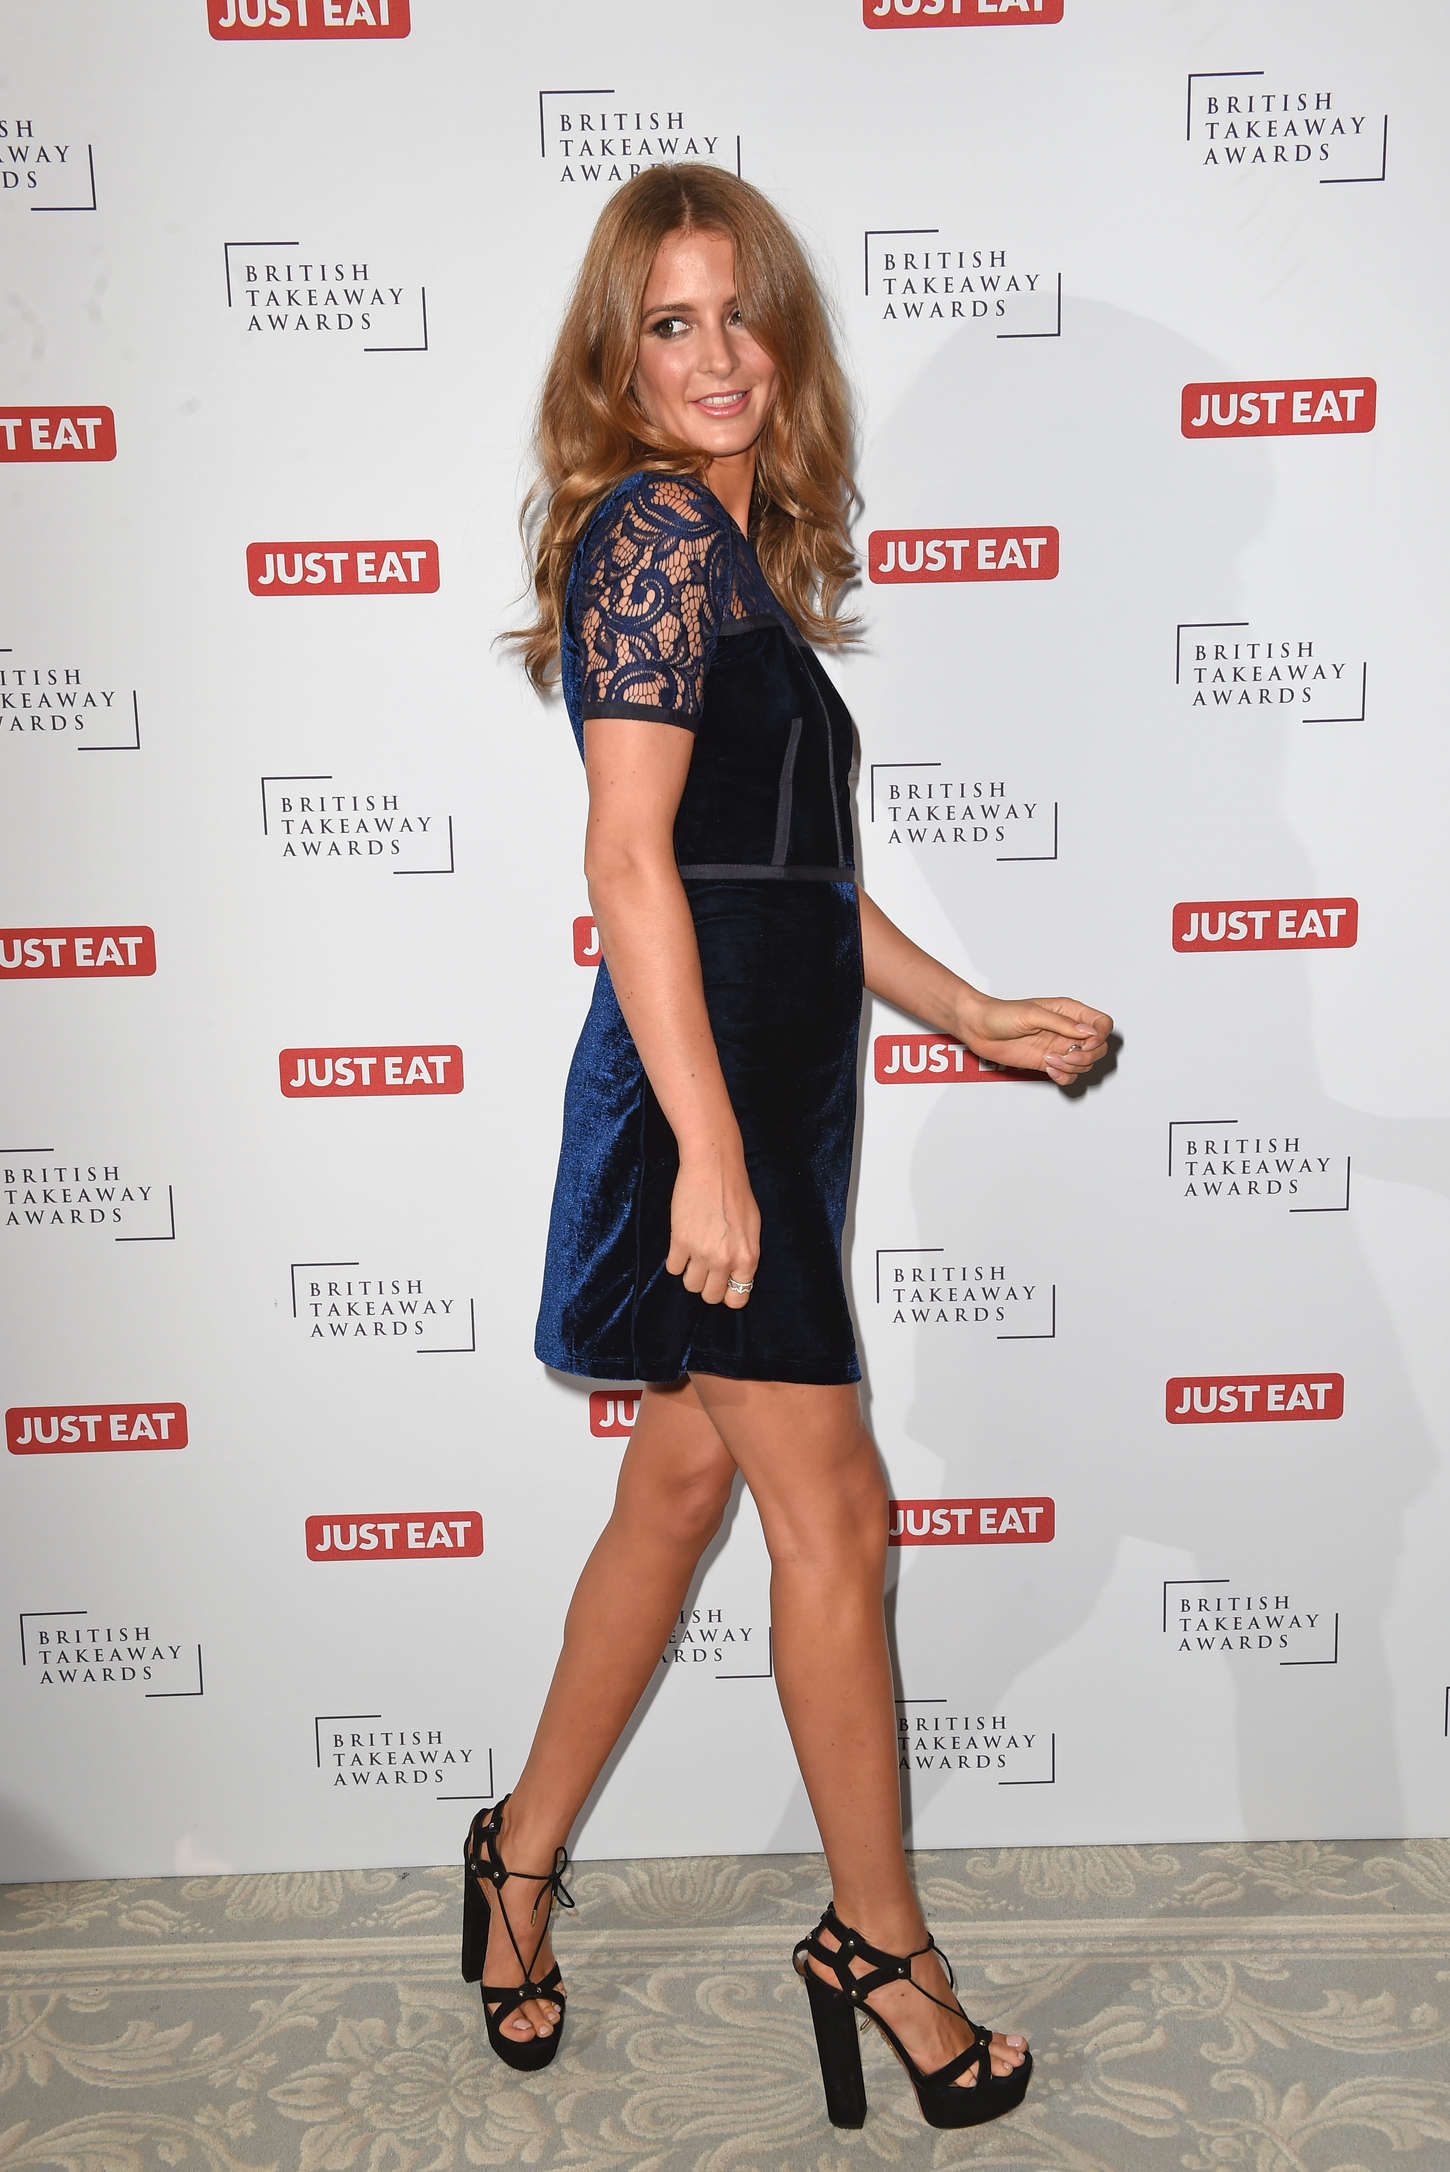 Millie Mackintosh British Takeaway Awards in London